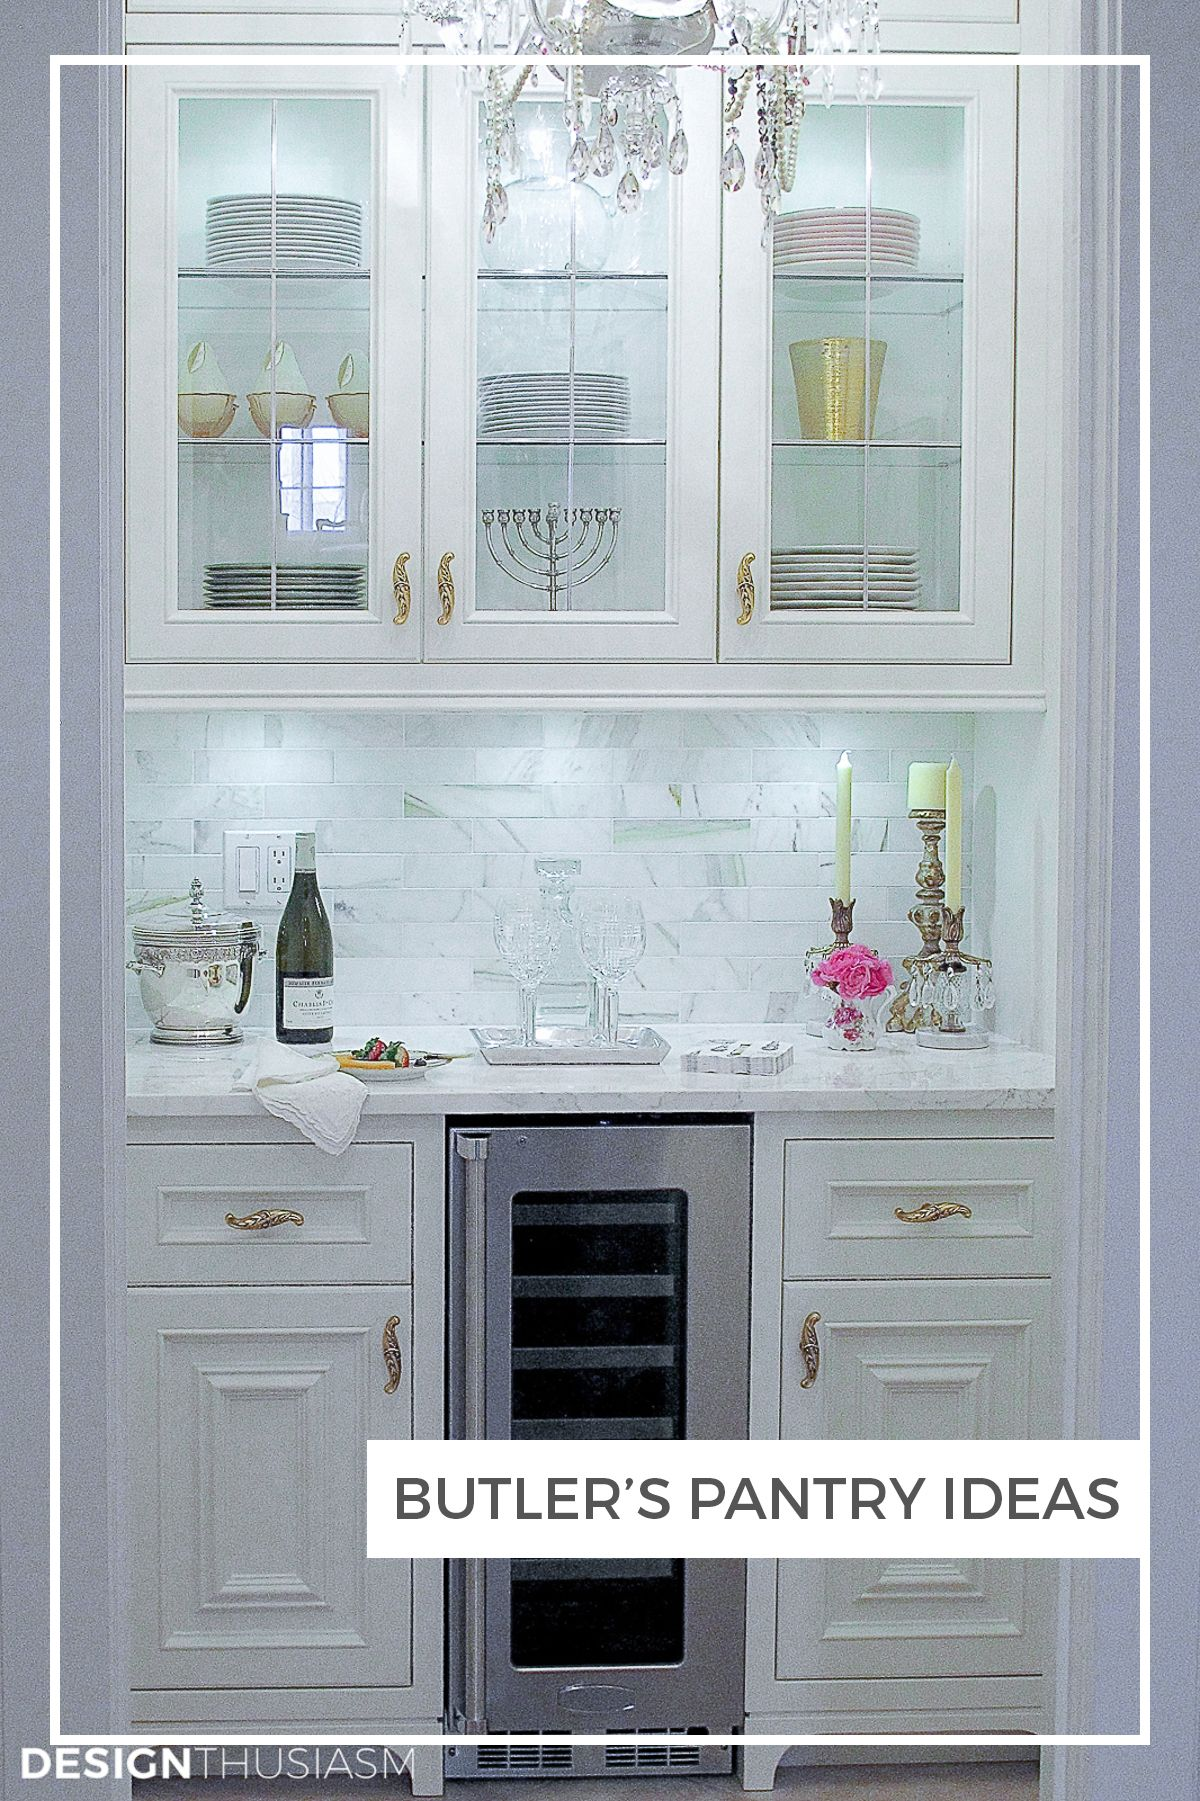 Butlers Pantry Ideas 10 Ways To Add French Style To The Butler S Pantry Country House Decor Pantry Renovation French Country Kitchens